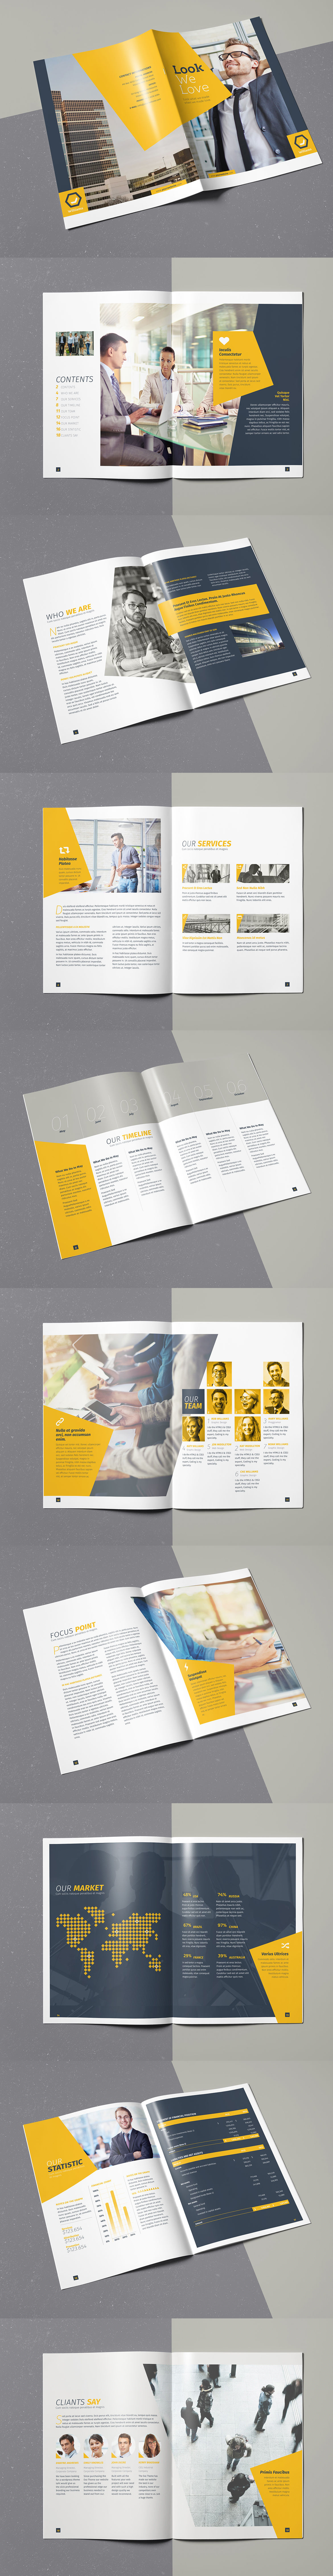 Corporate or Creative Agency Brochure Template InDesign INDD - 20 ...